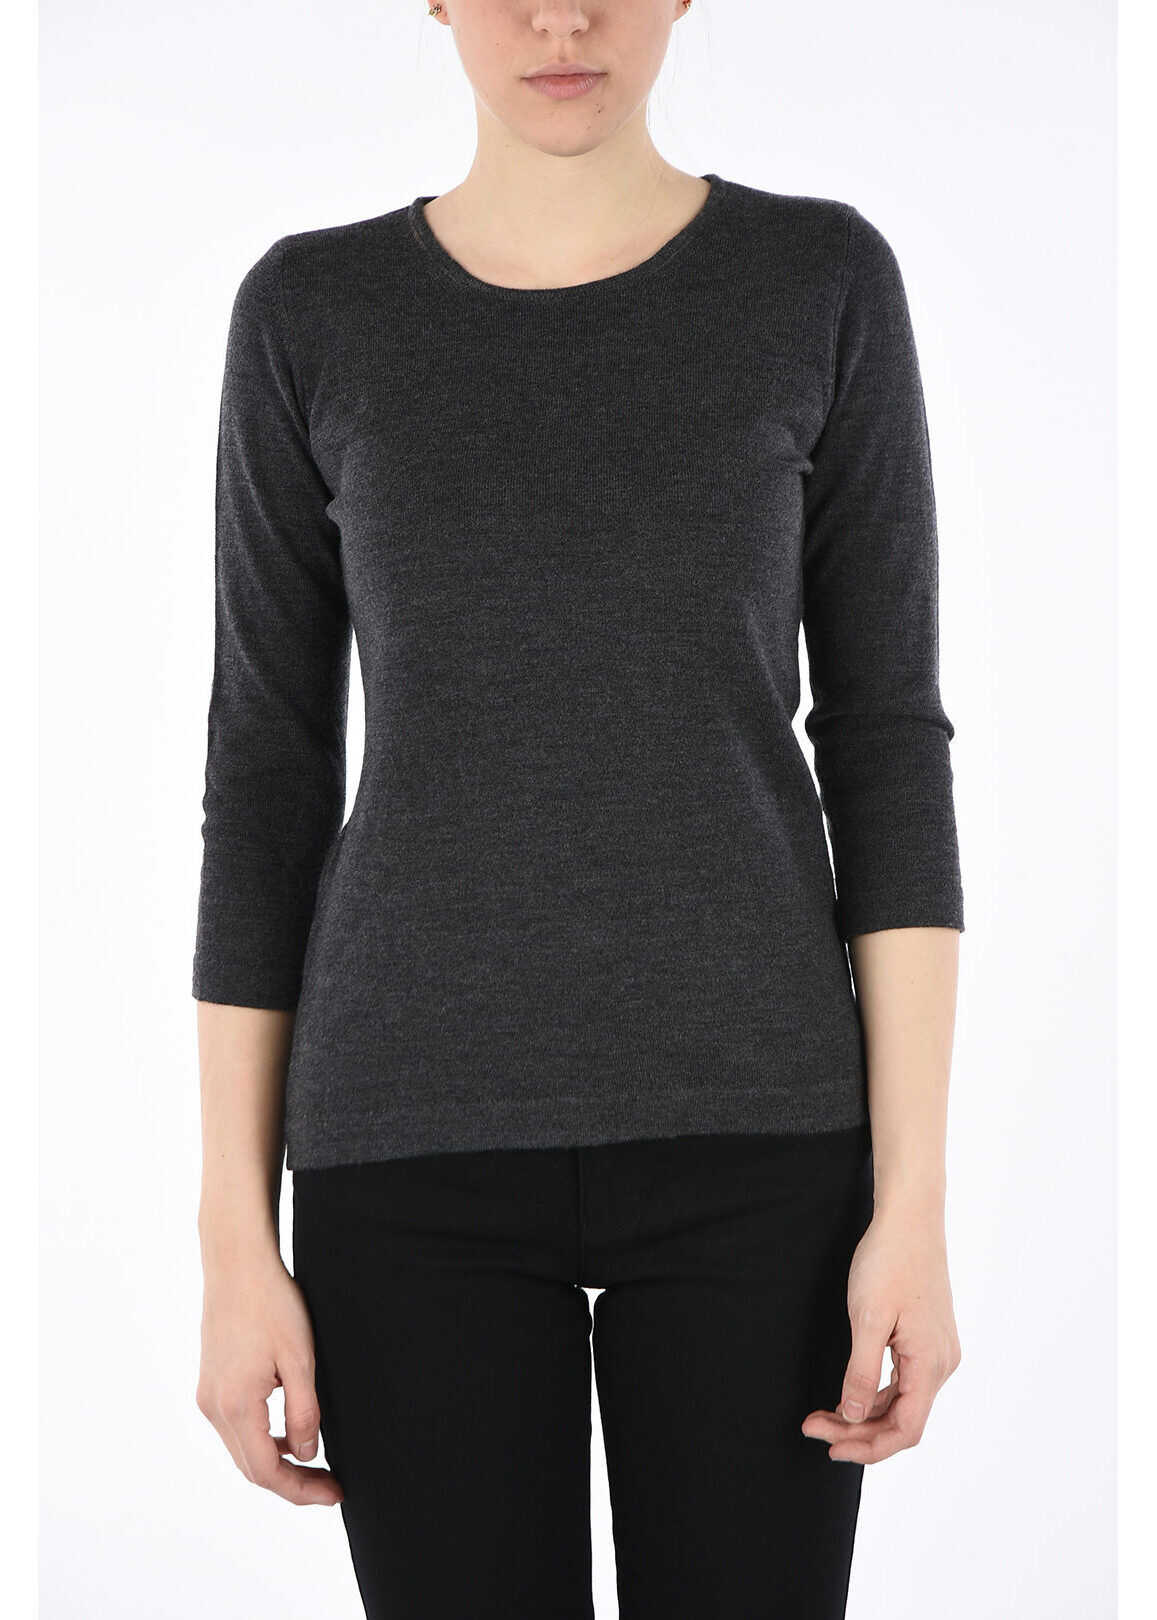 Armani COLLEZIONI Virgin Wool Sweater GRAY